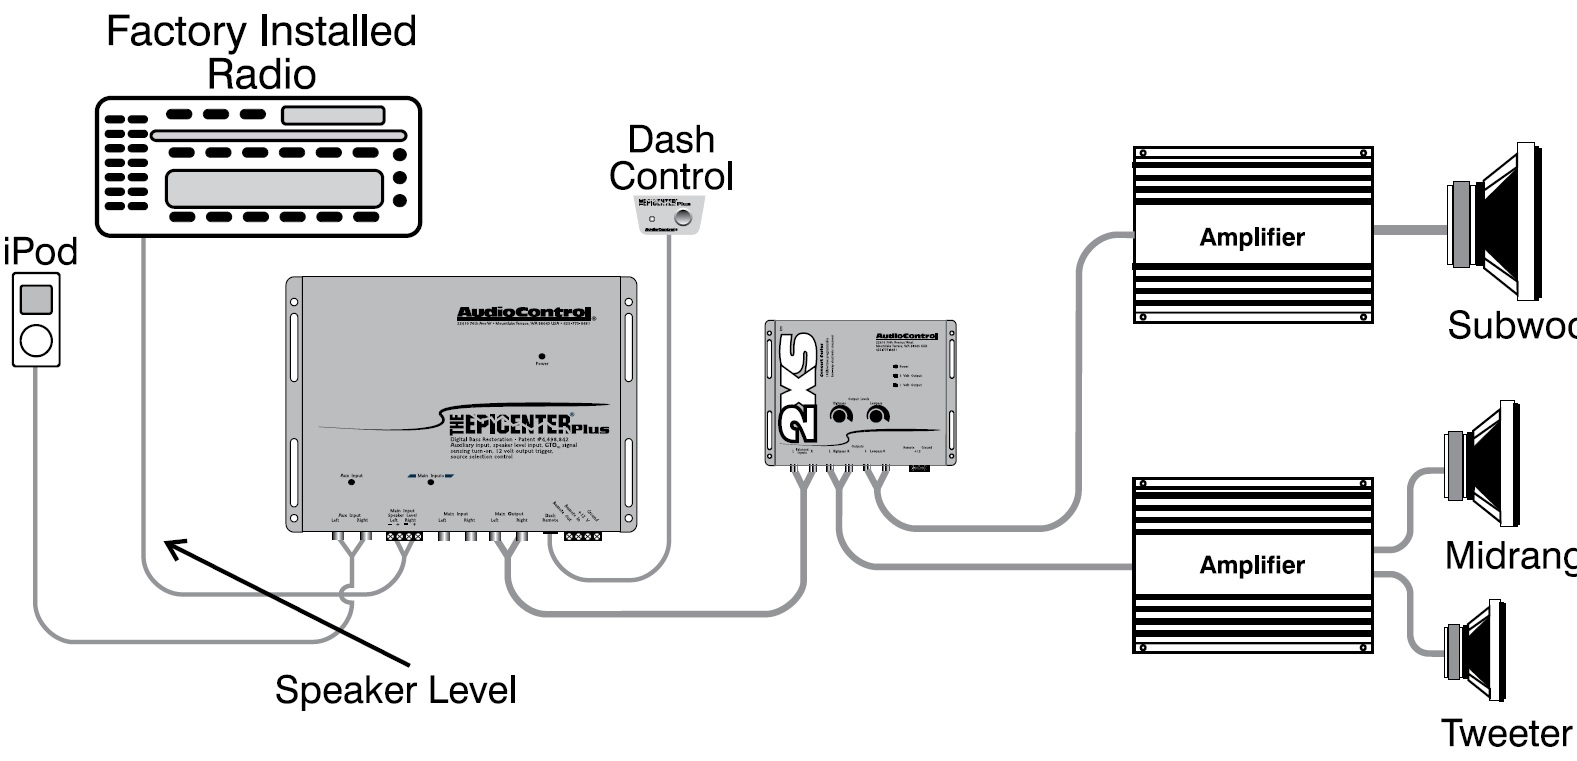 epicenterplus_simpleinstall car application diagrams audiocontrol lci wiring diagram leveling system at soozxer.org